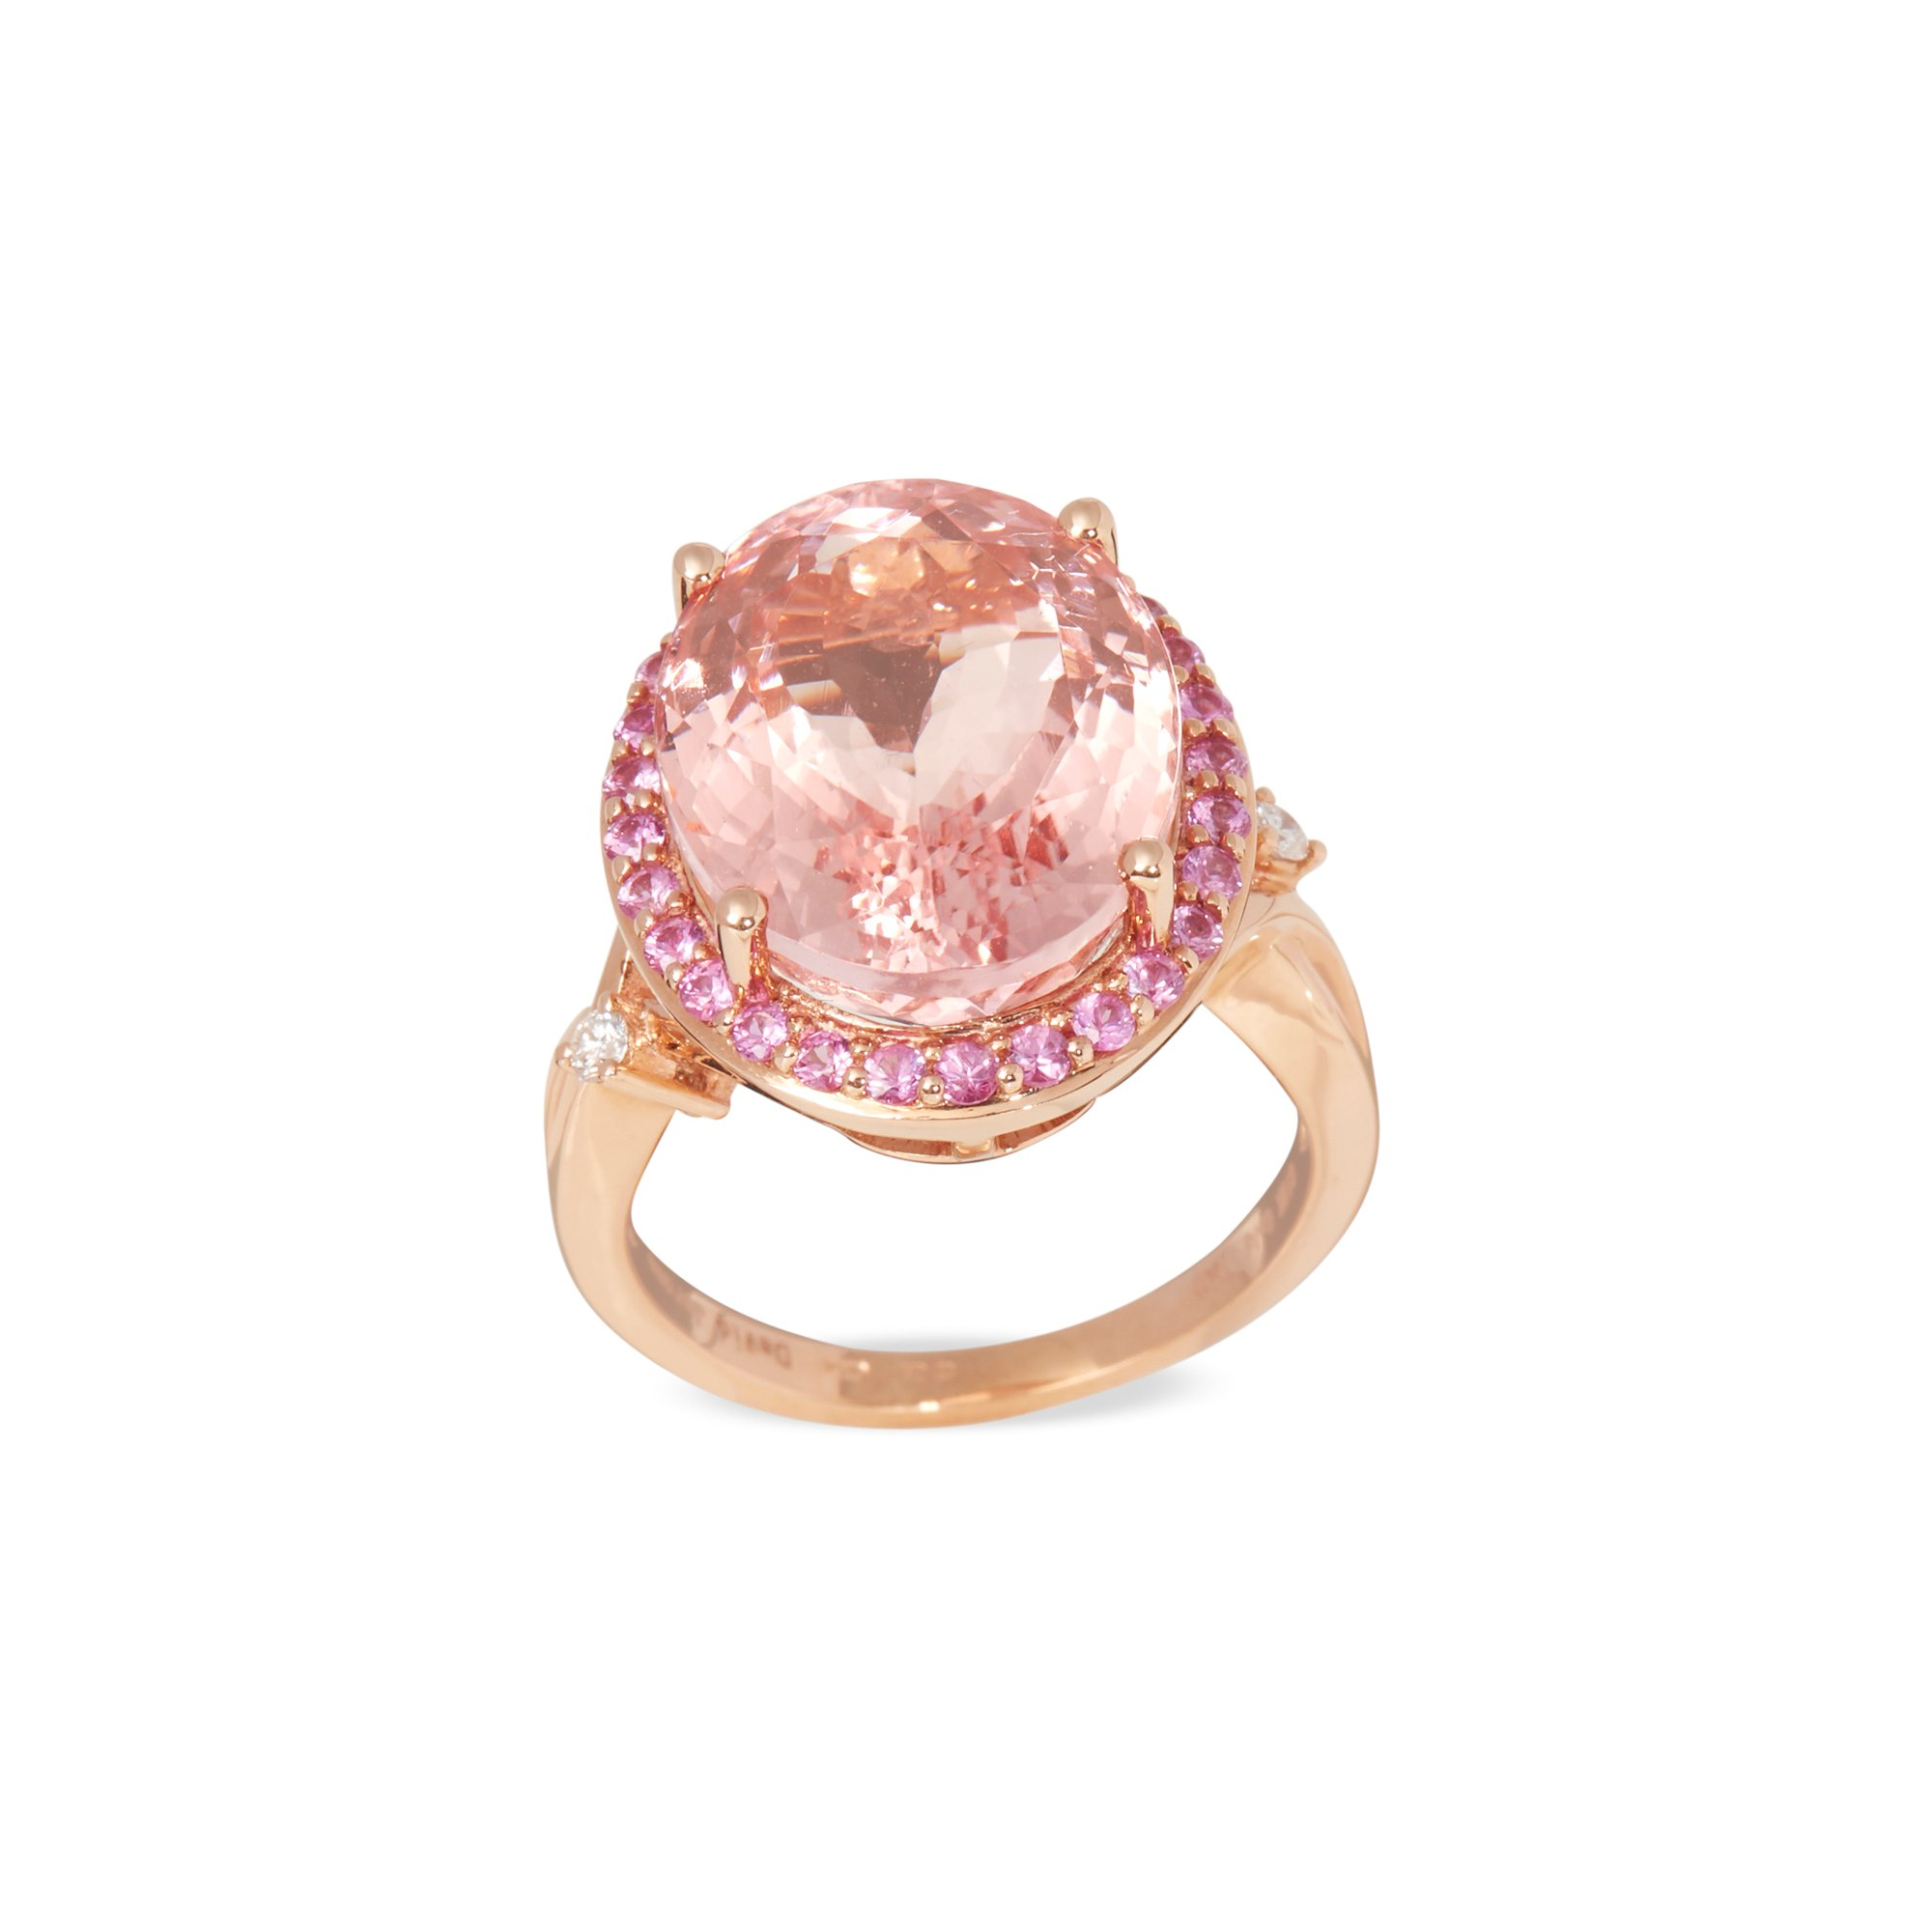 David Jerome certified 12.51ct Untreated Brazilian Oval Cut Morganite and Diamond Ring